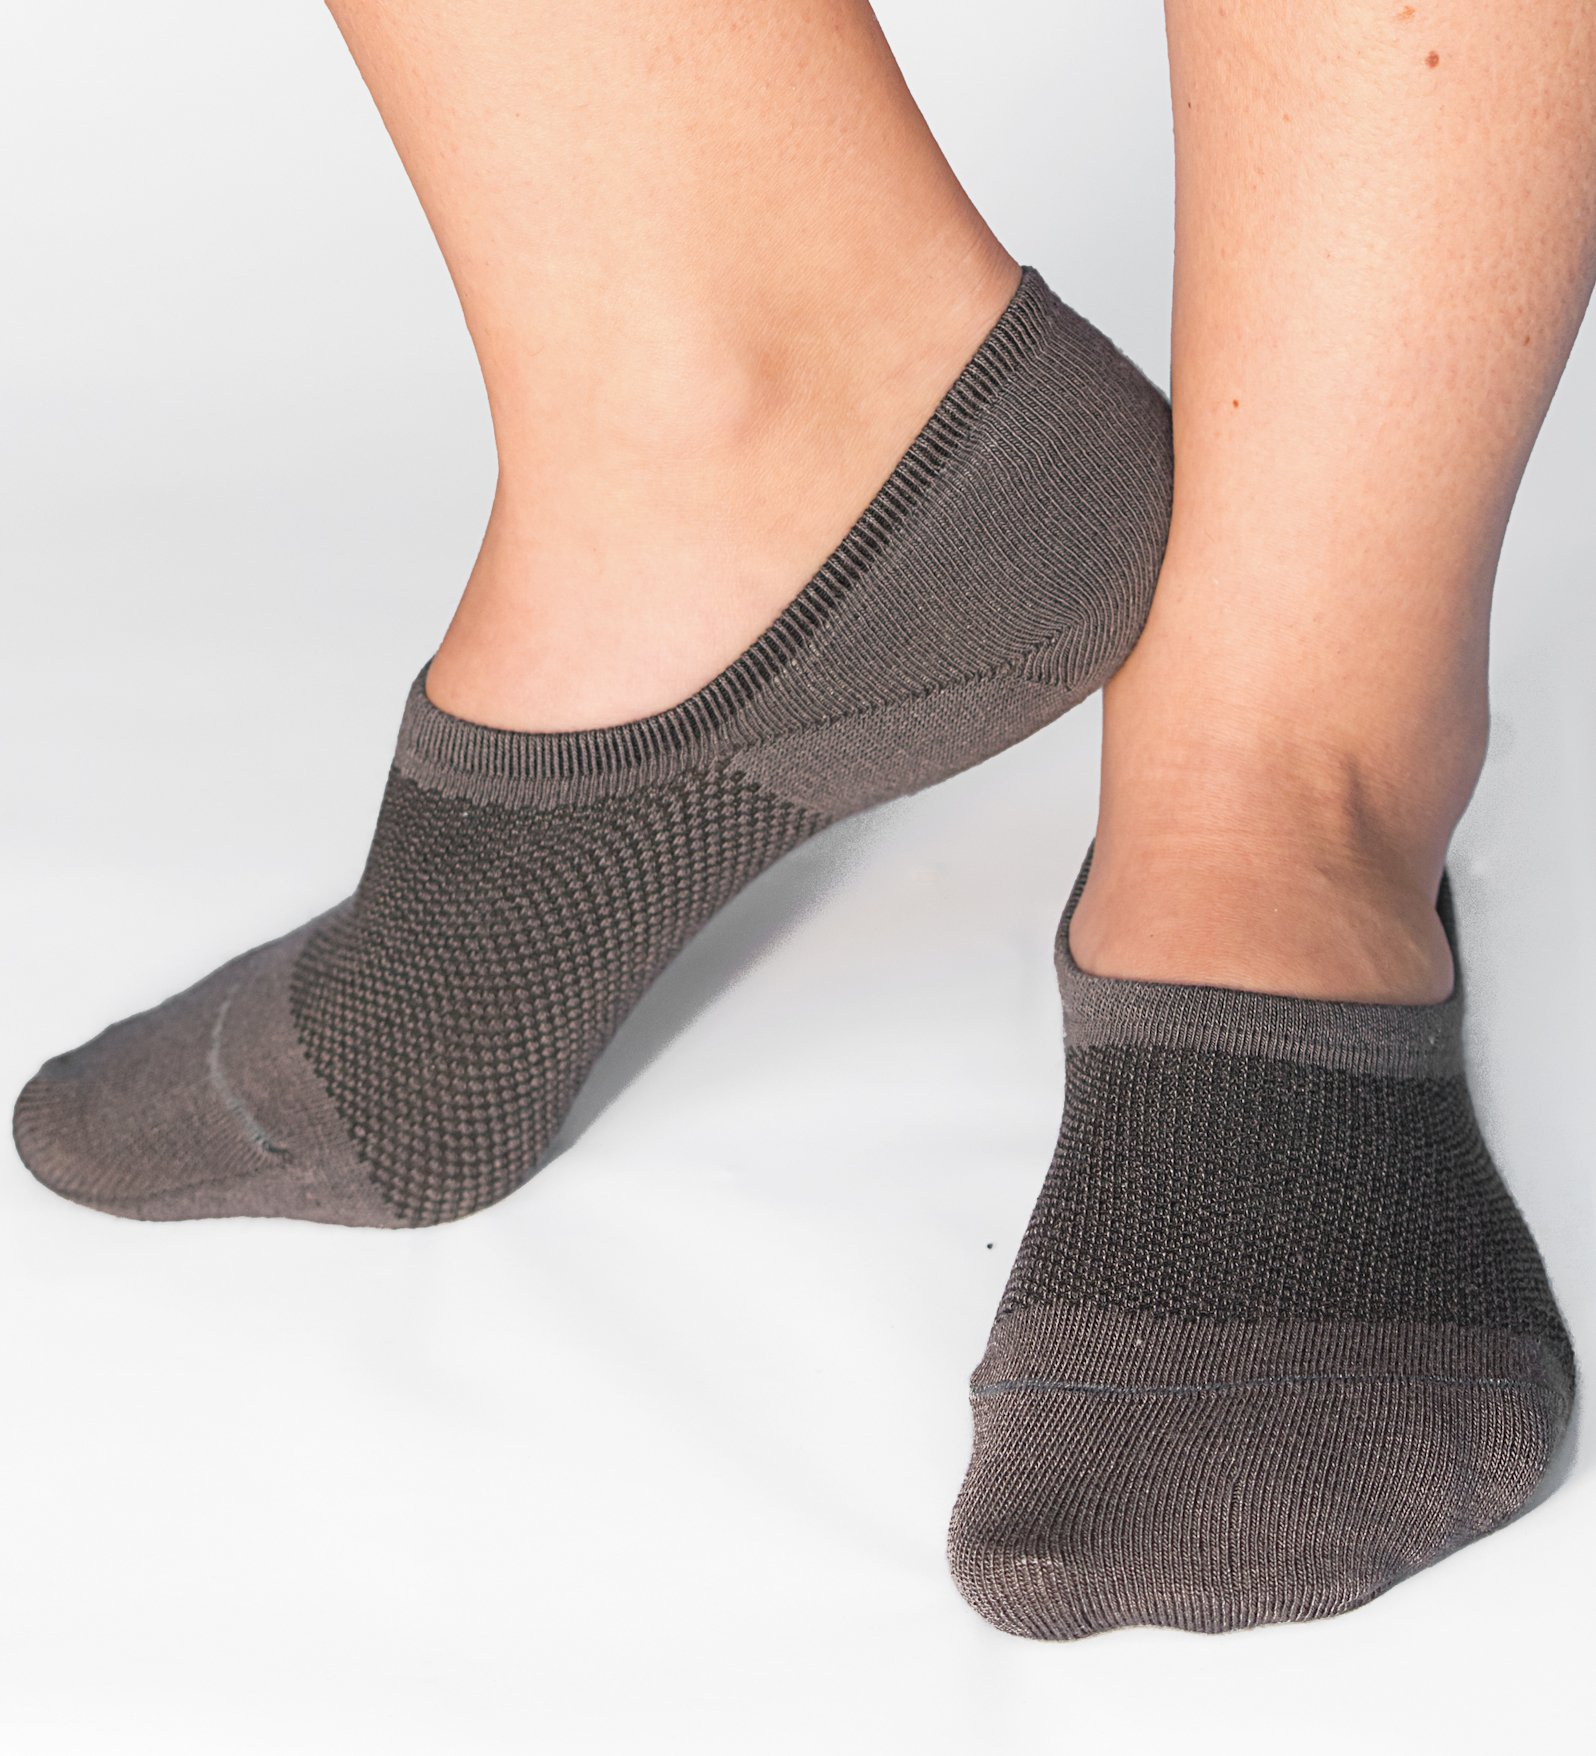 Bam&bü Women's Premium Bamboo No Show Casual Socks - 3 or 4 pair pack - Non-Slip by bam & bü (Image #8)